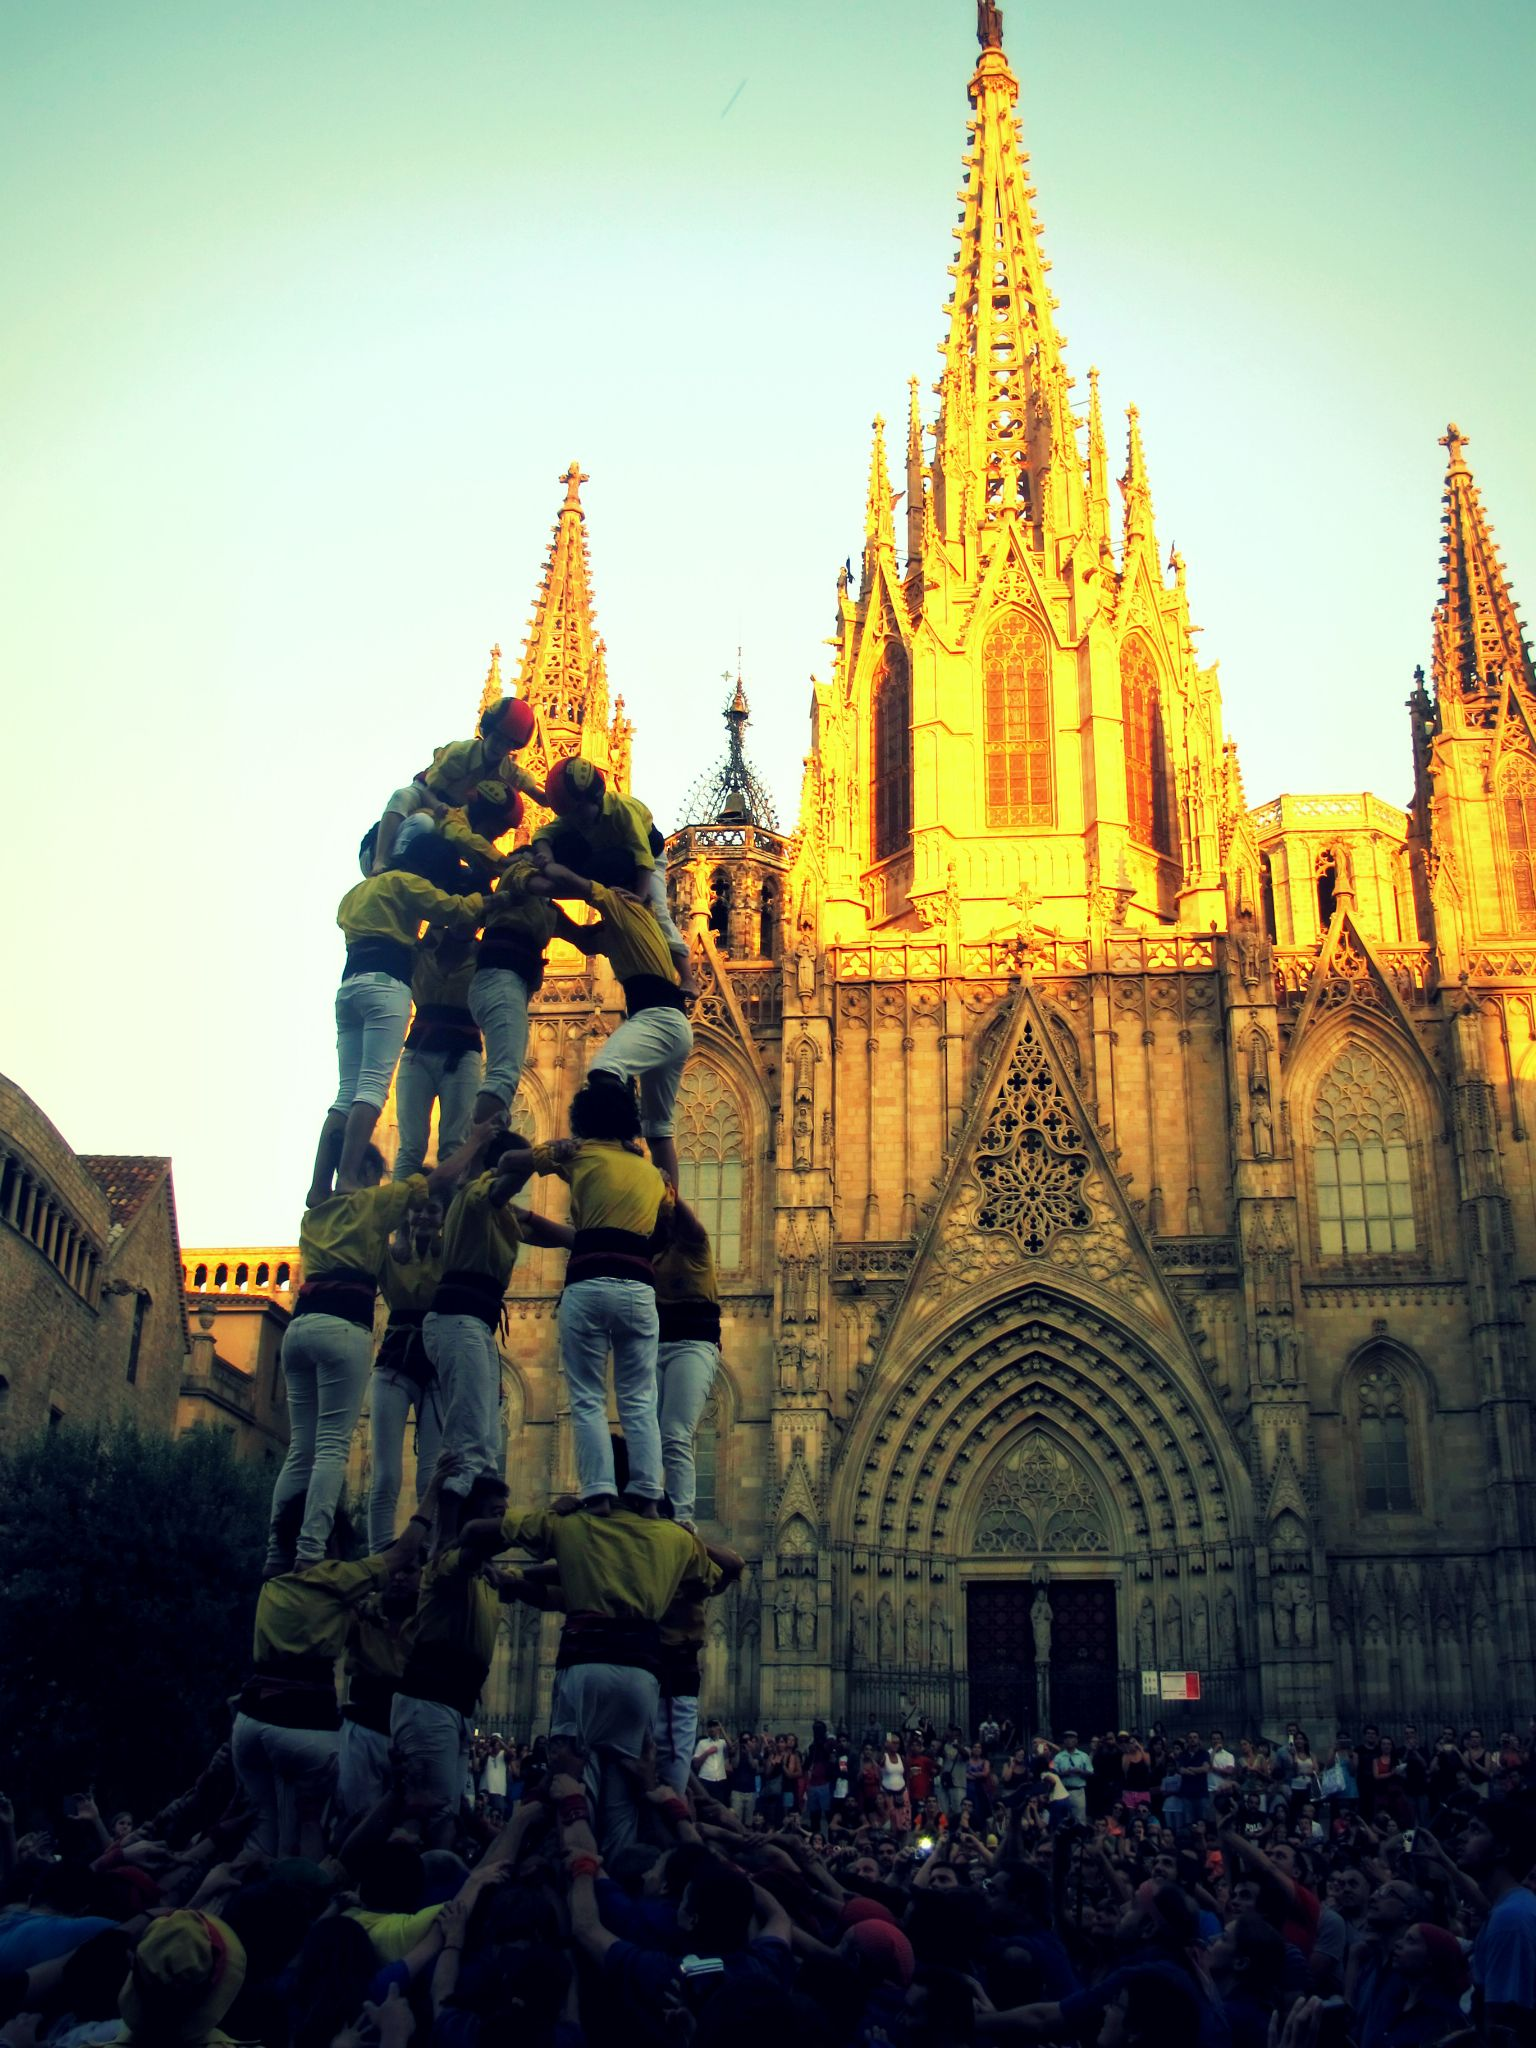 IMG_3349catedral de barcelona by angelgarcia